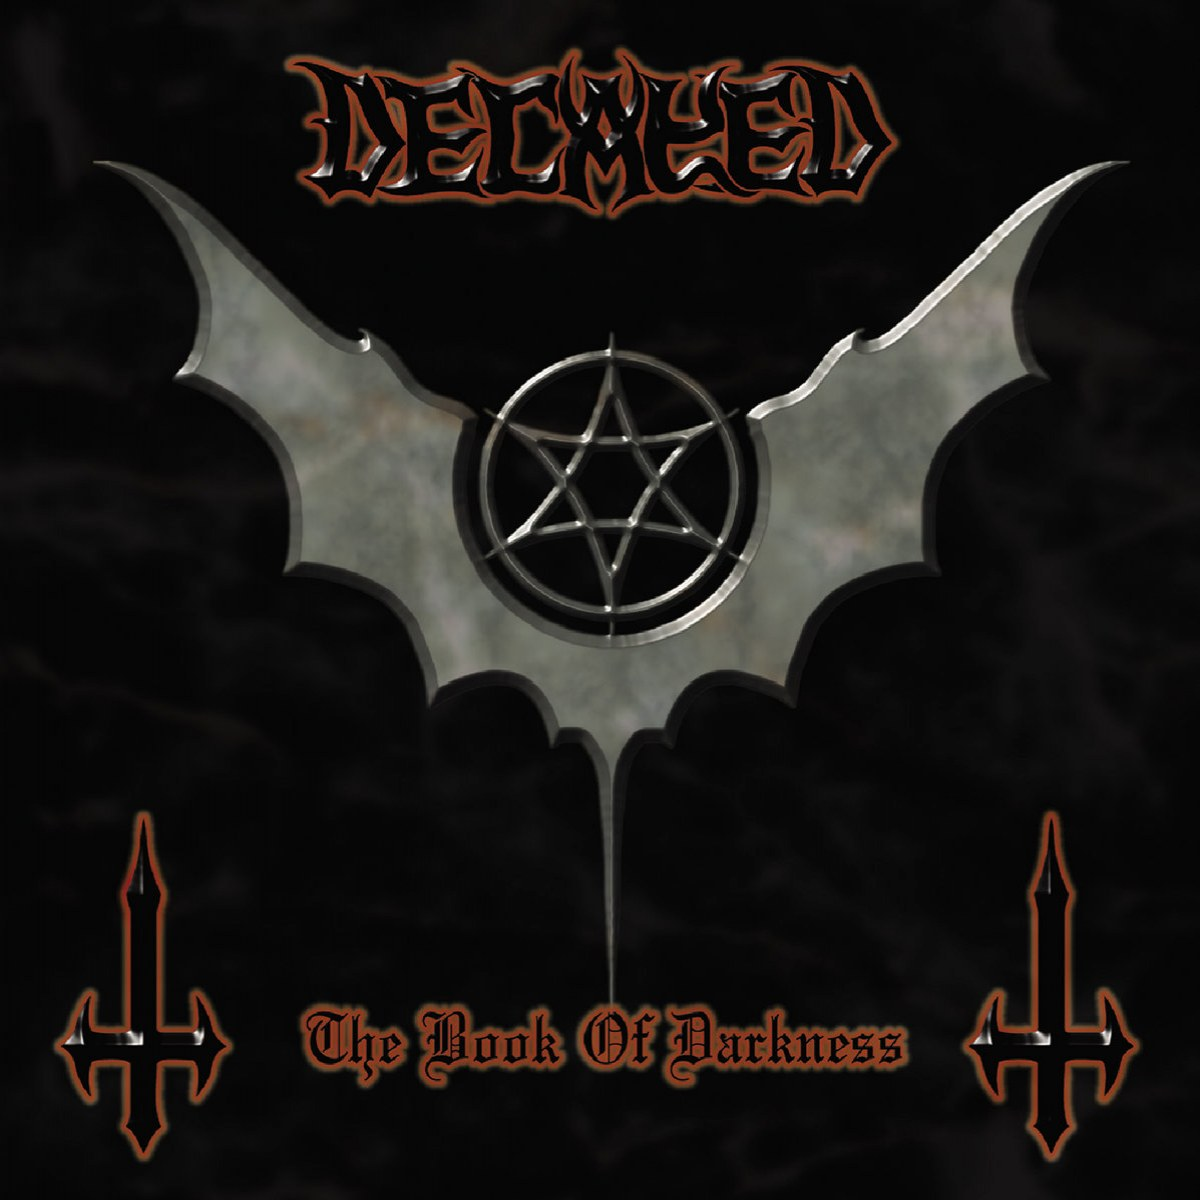 Reviews for Decayed - The Book of Darkness